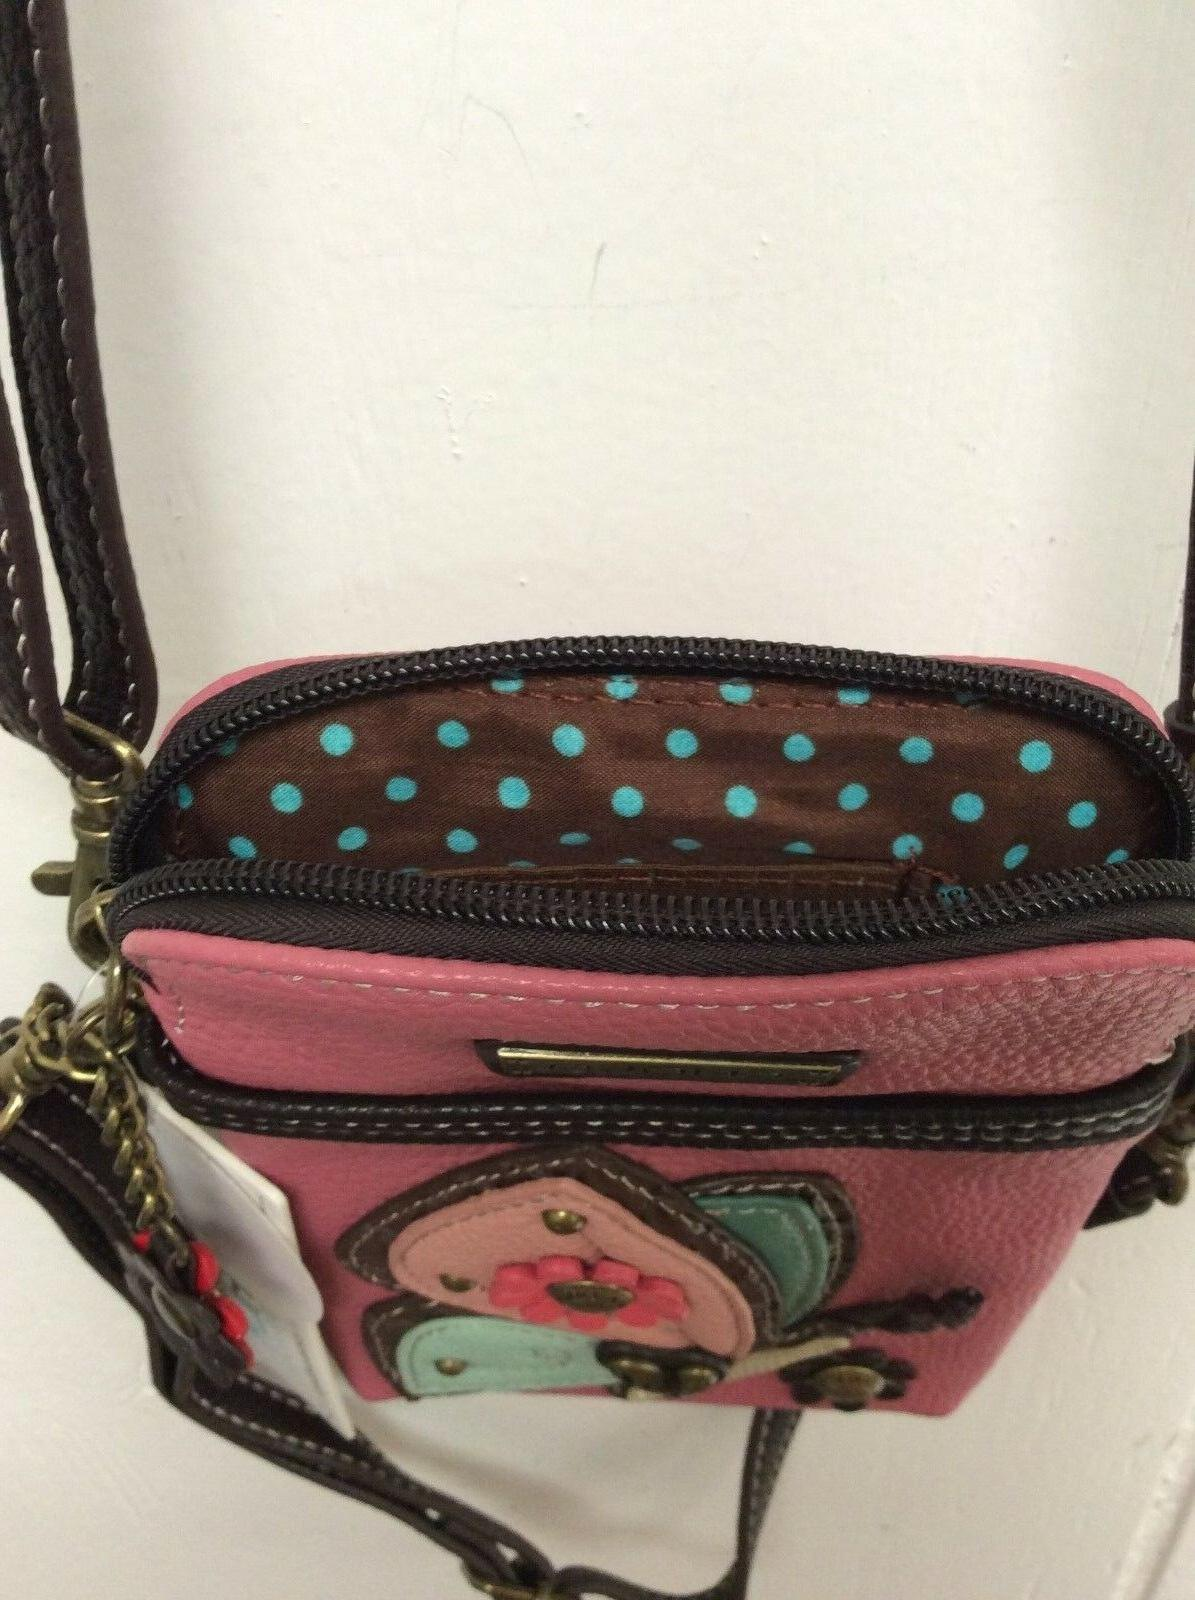 Chala Pink Phone Crossbody Small Convertible Purse New